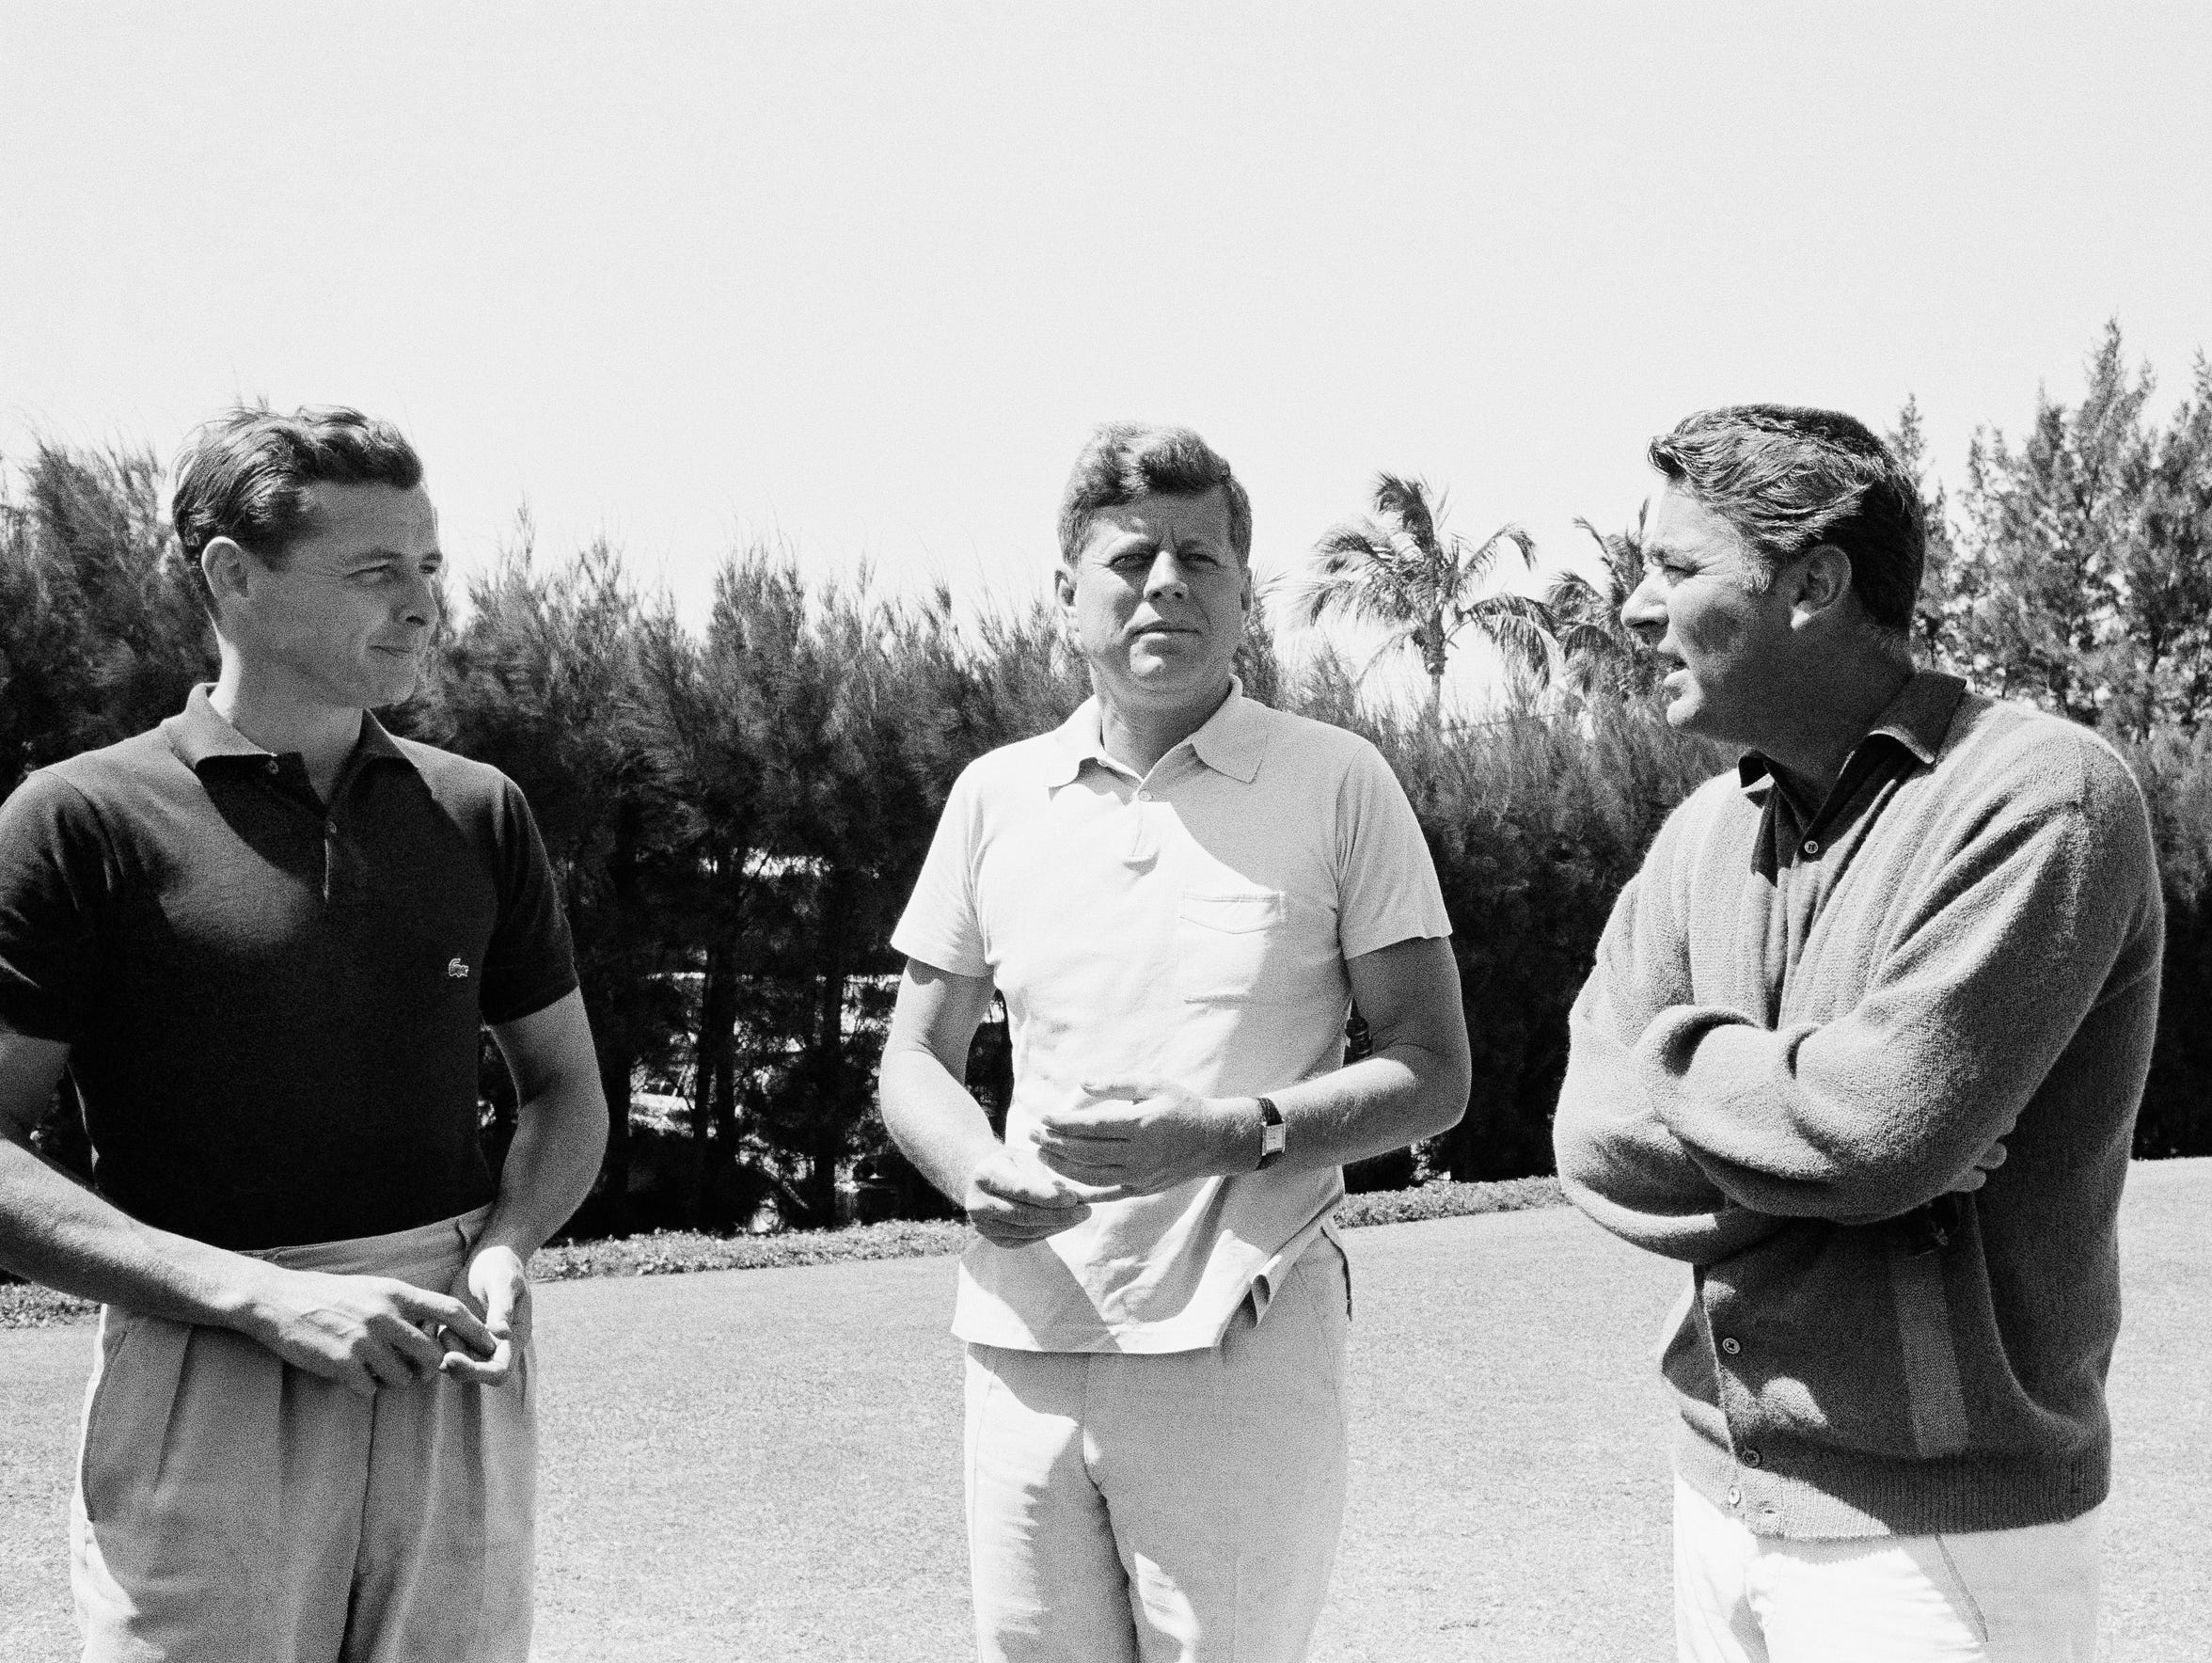 President John Kennedy, clad in a sport shirt and slacks,